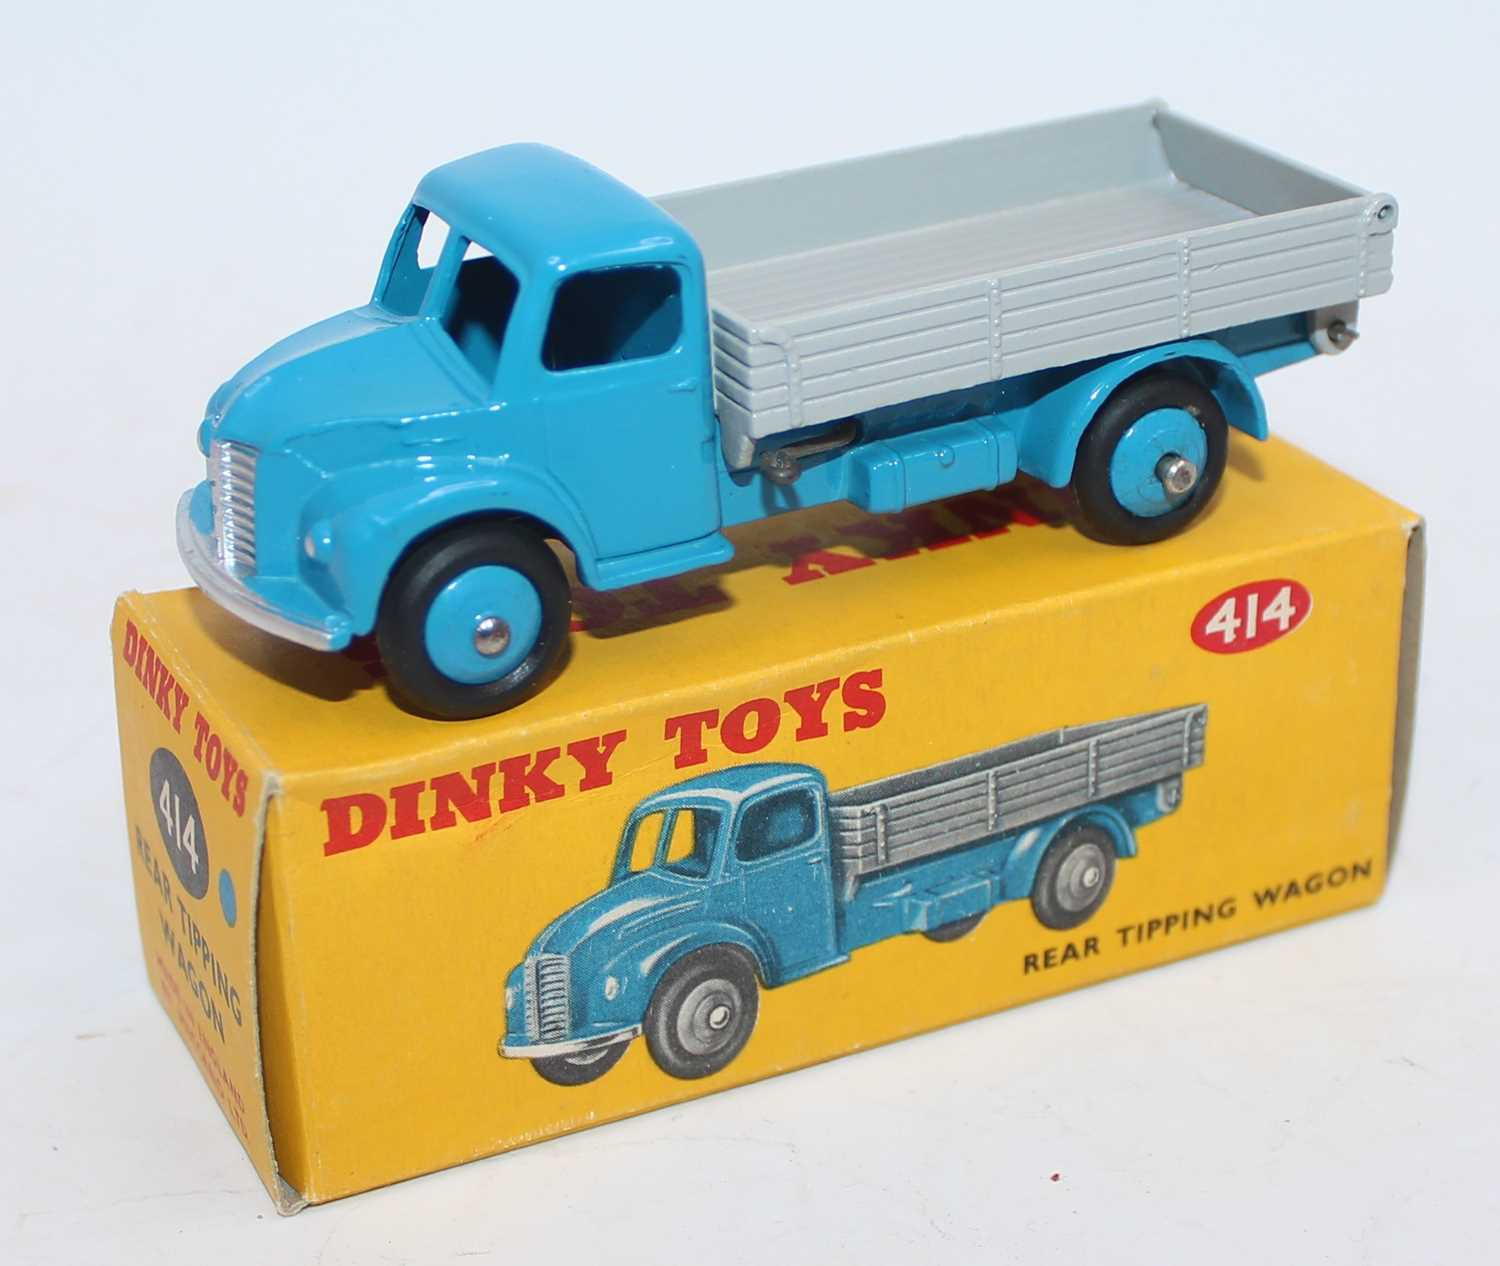 Dinky Toys No.414 Rear Tipping Wagon with light blue cab and chassis with grey back and matching